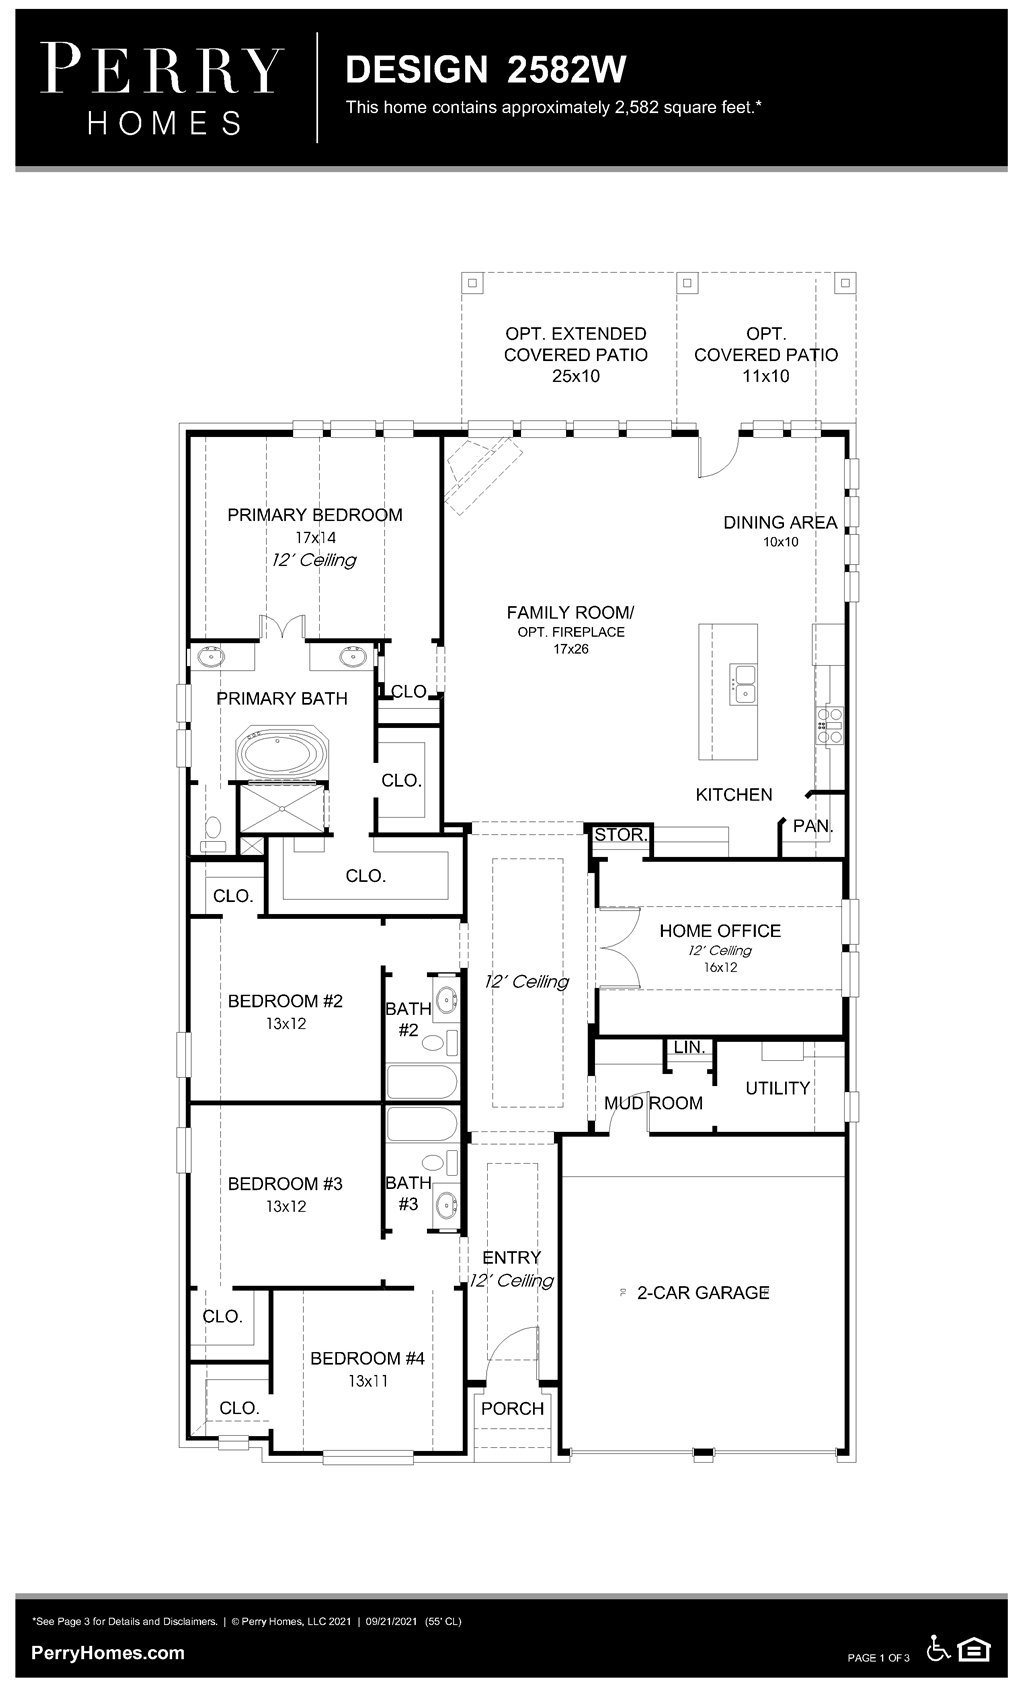 Floor Plan for 2582W